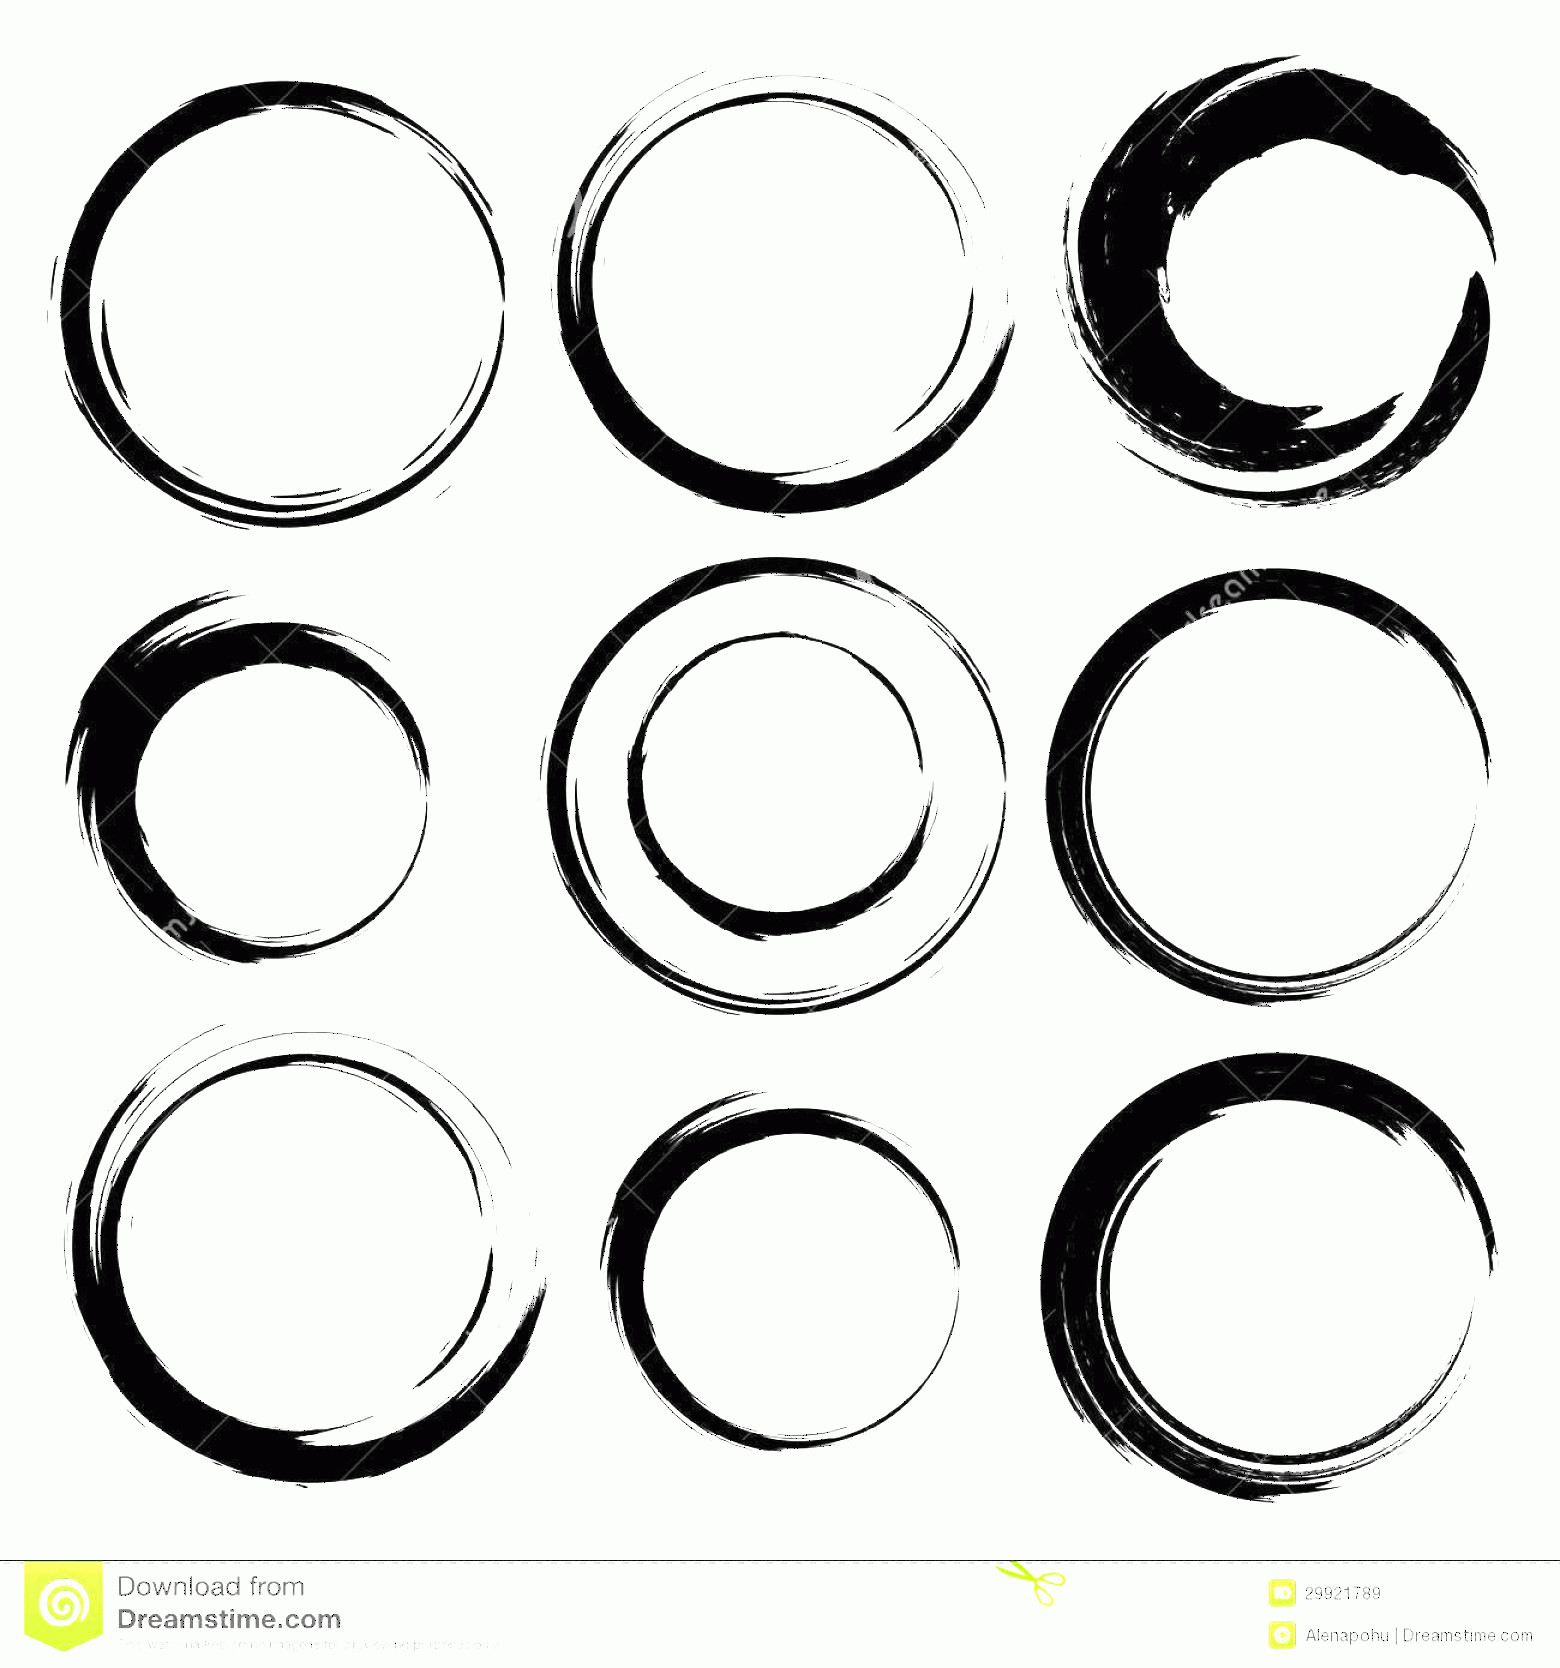 Distressed Border Circle Vector: Royalty Free Stock Images Vector Set Grunge Circle Brush Strokes Frames Icons Design Elements Image